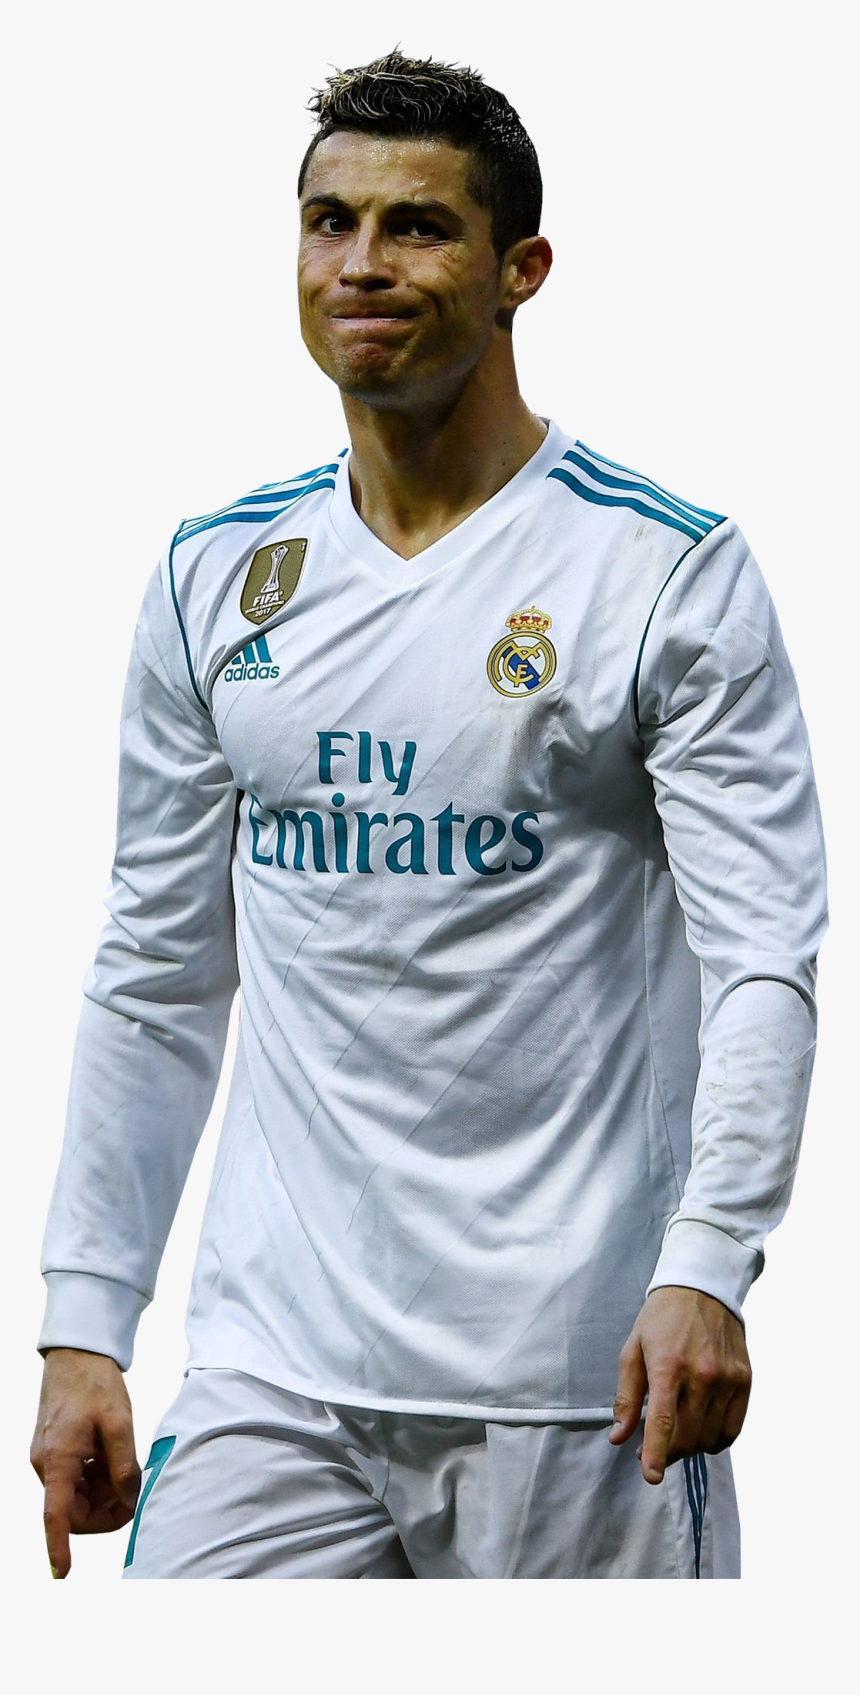 Cristiano Ronaldo Cr7 Png 2018 Football Clipart Image.